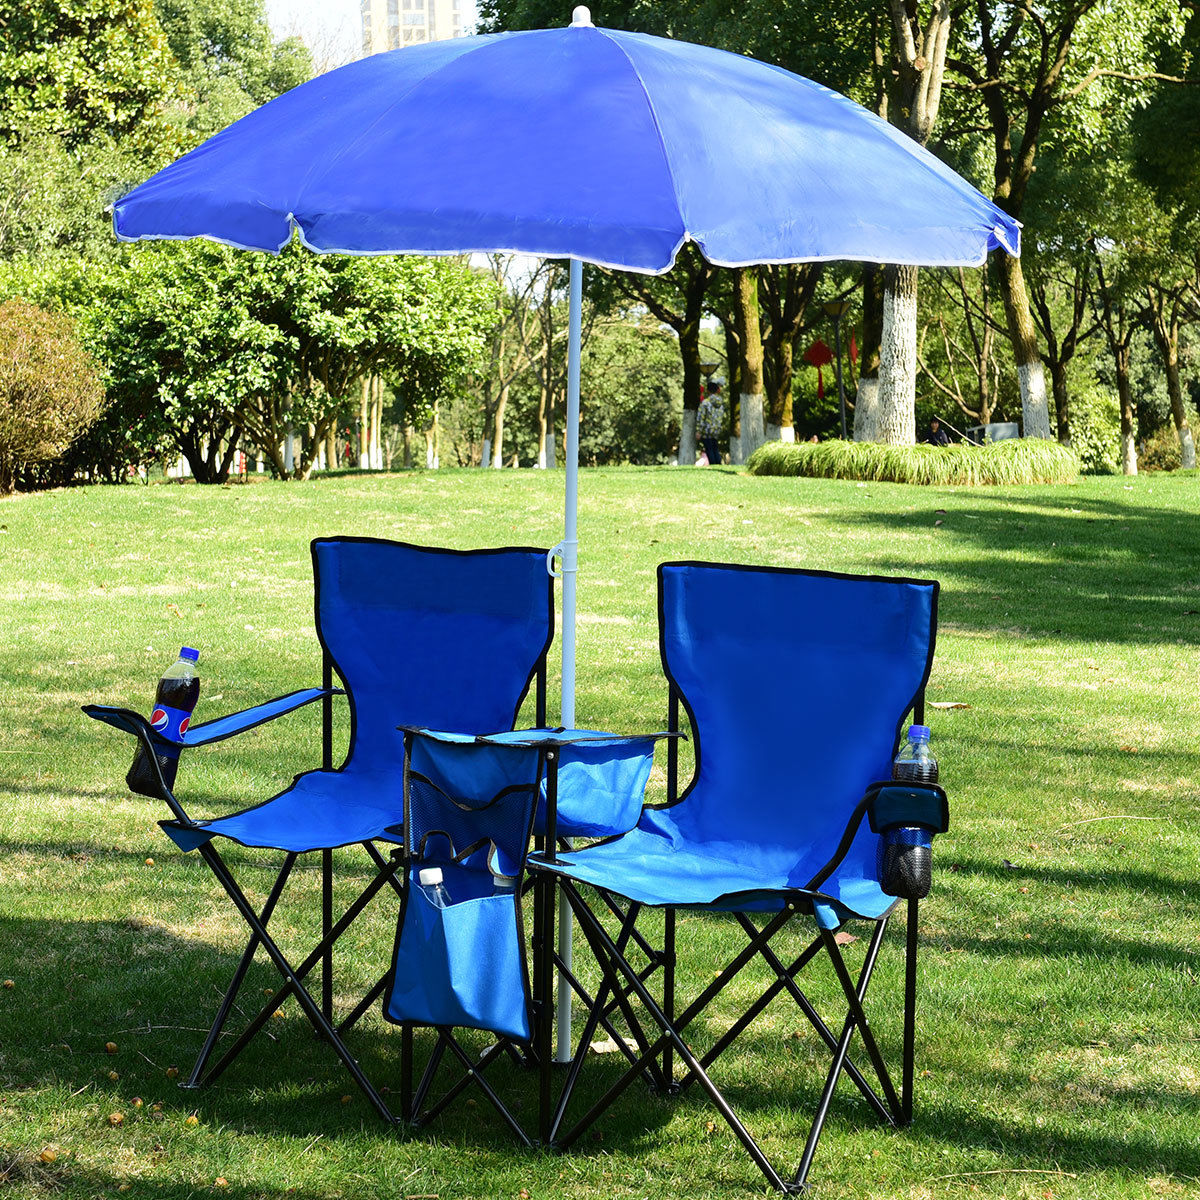 Prime Details About Foldable Picnic Beach Camping Double Chair Umbrella Table Cooler Fishing Fold Up Gmtry Best Dining Table And Chair Ideas Images Gmtryco